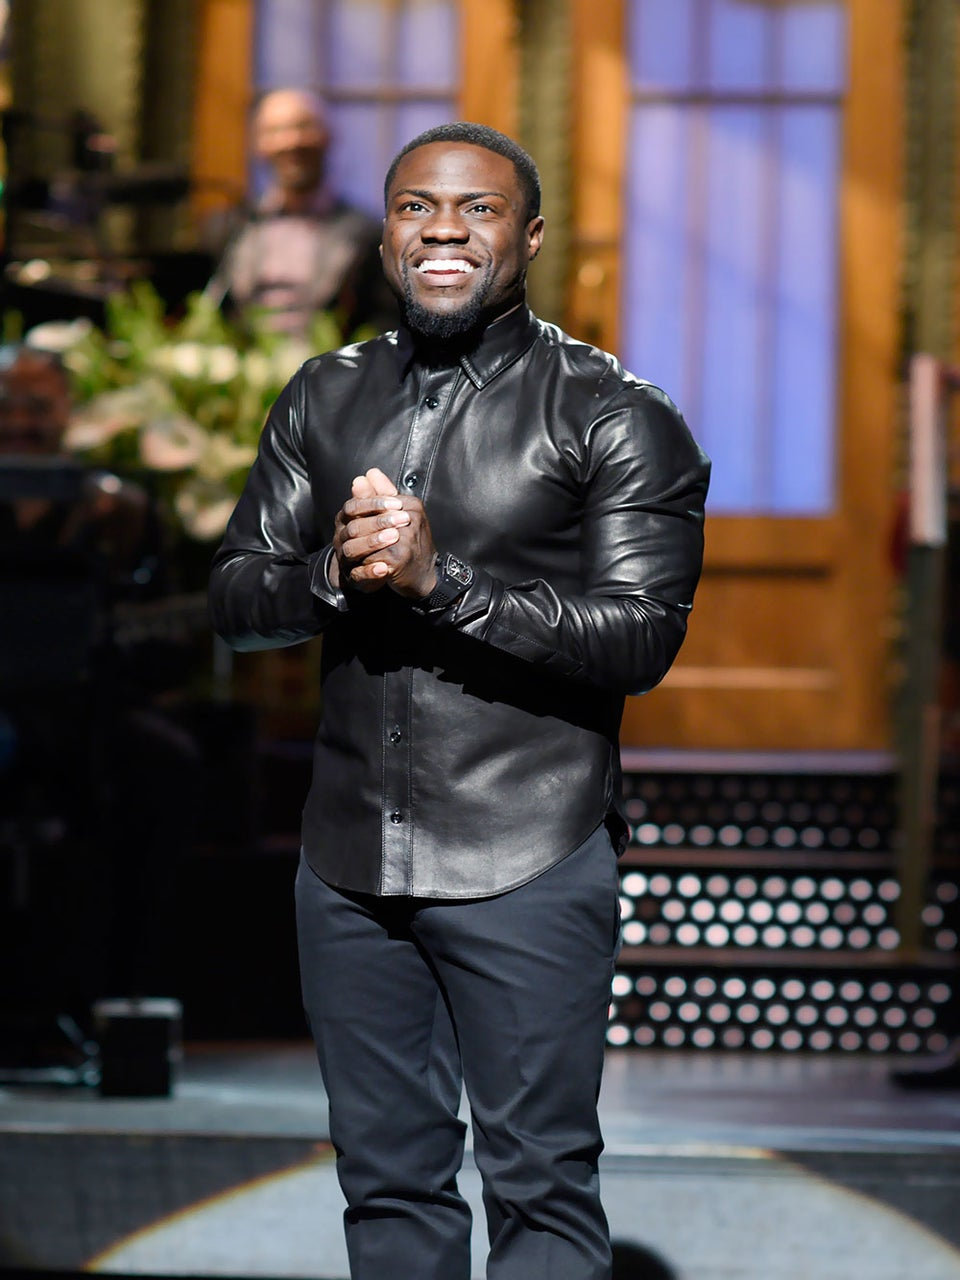 Kevin Hart To Be First Comedian to Headline NFL Stadium